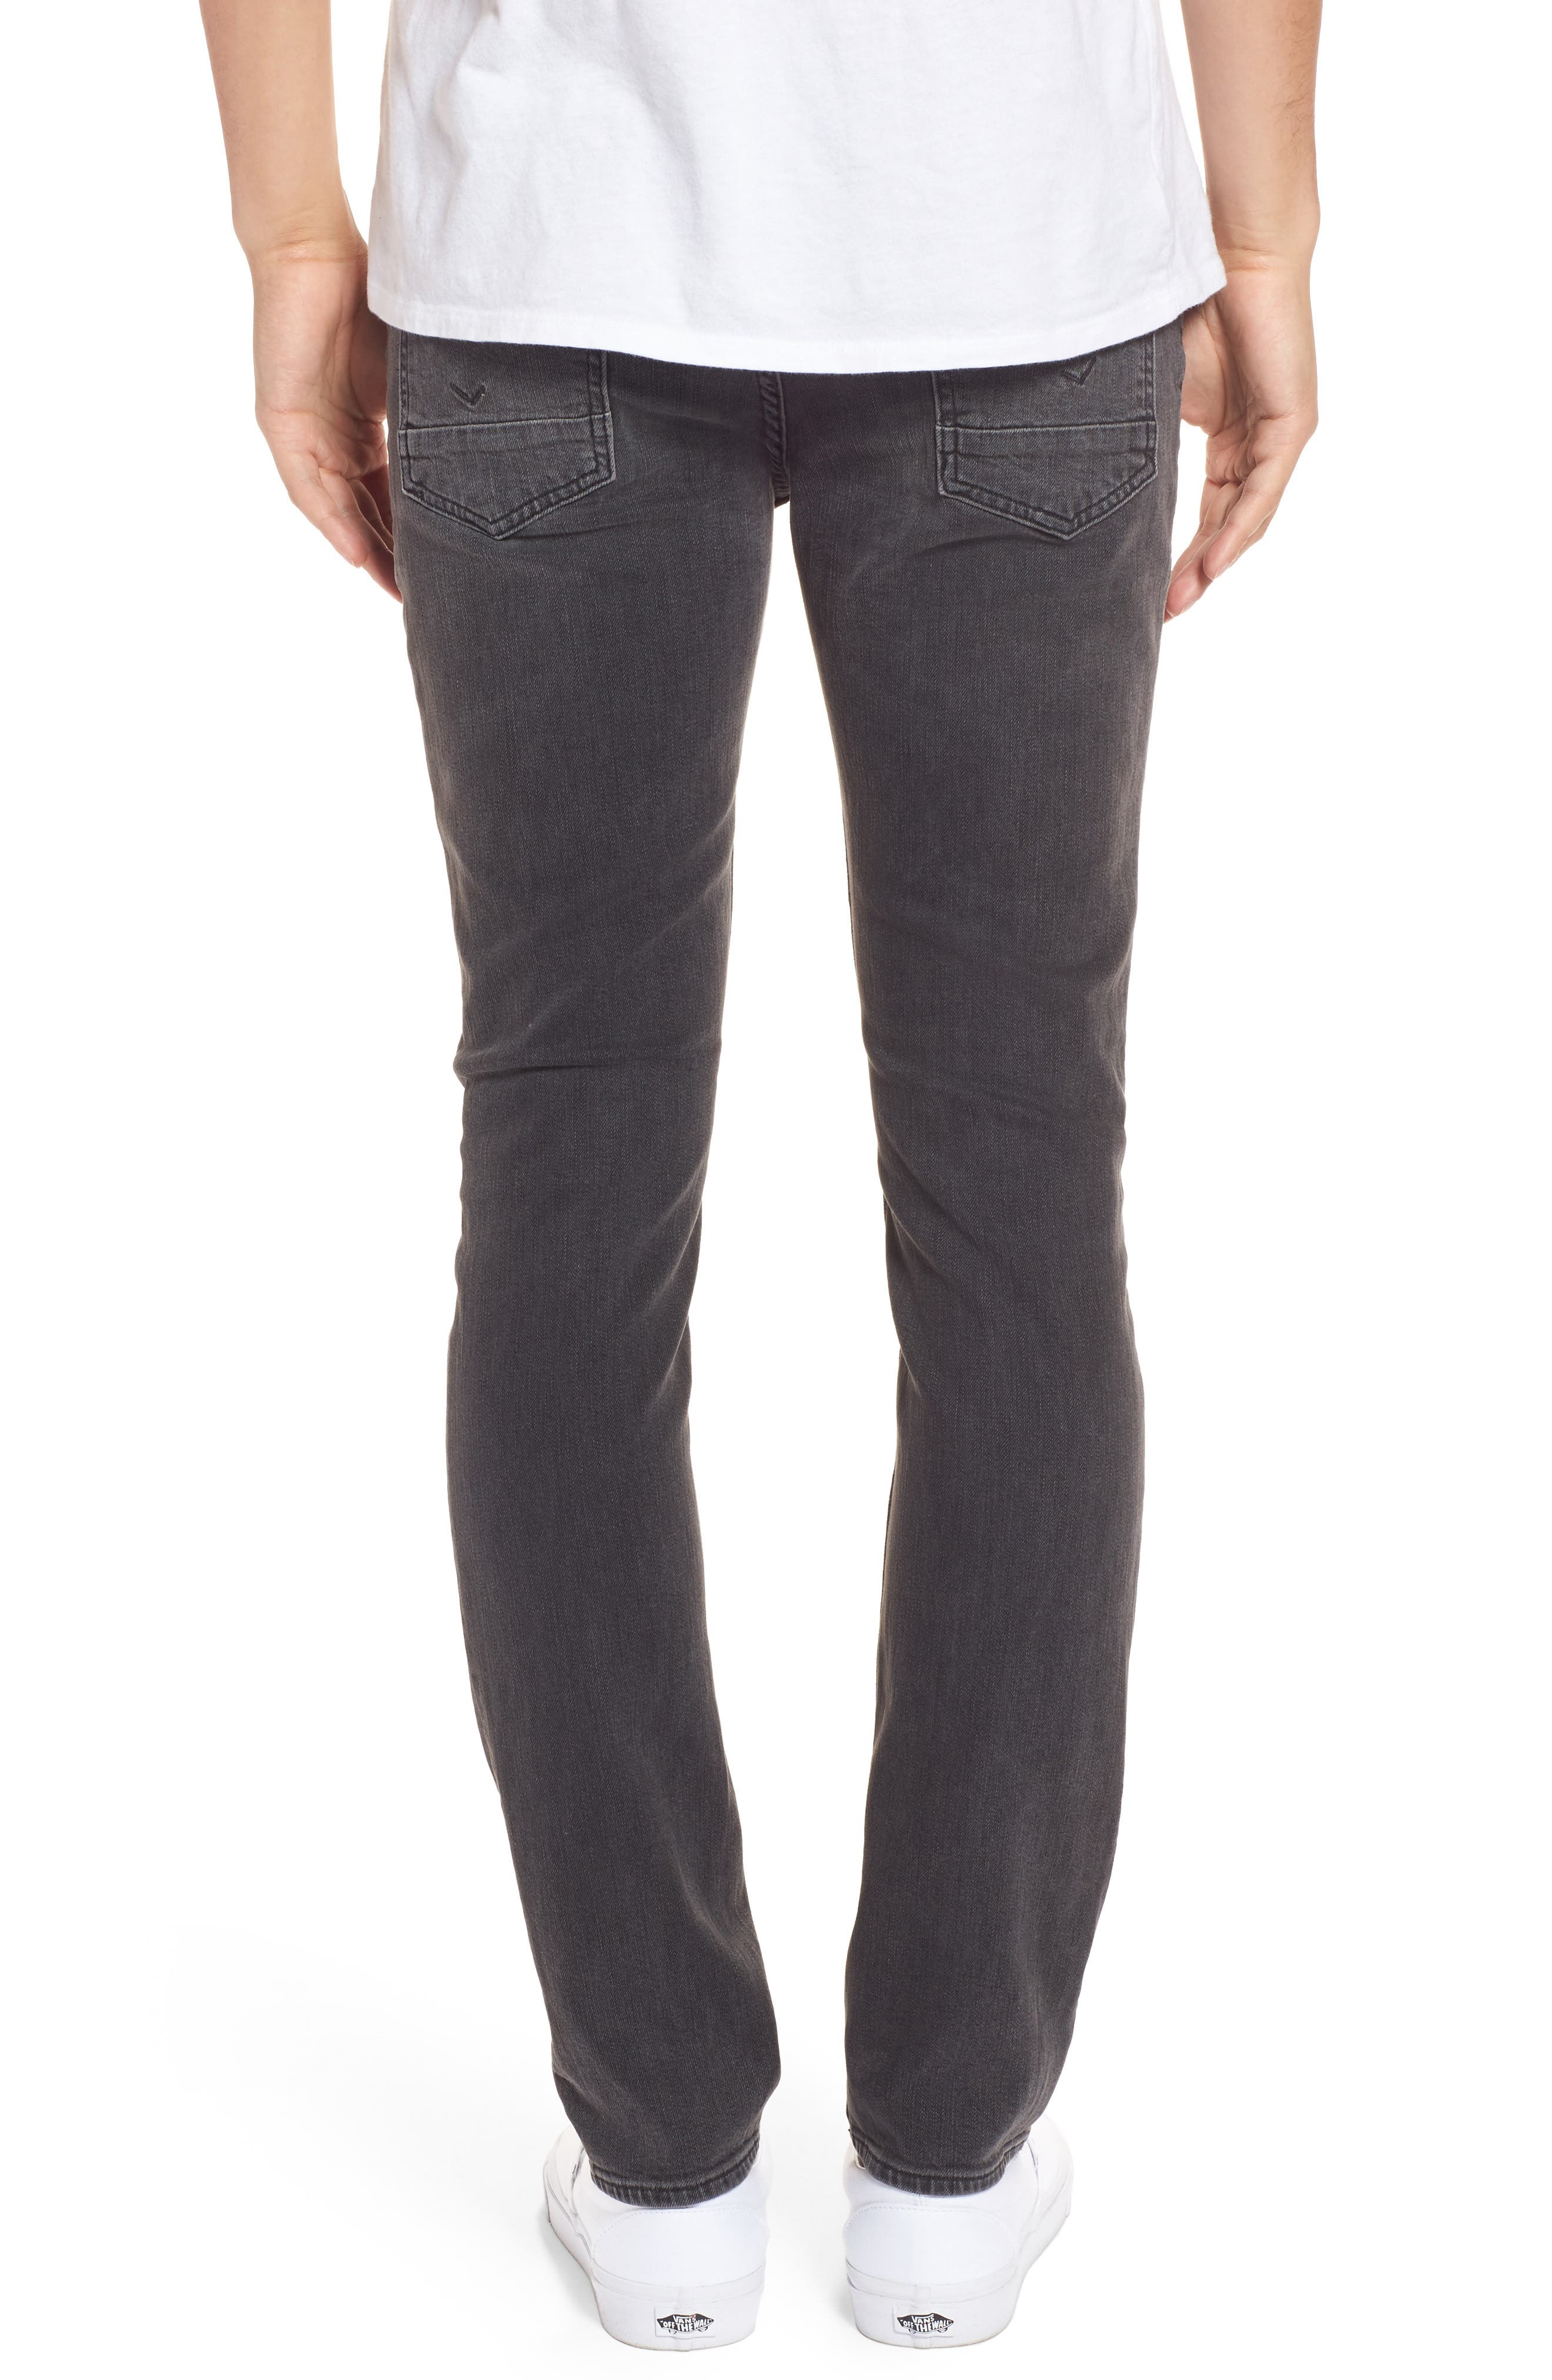 Axl Skinny Fit Jeans,                             Alternate thumbnail 2, color,                             020